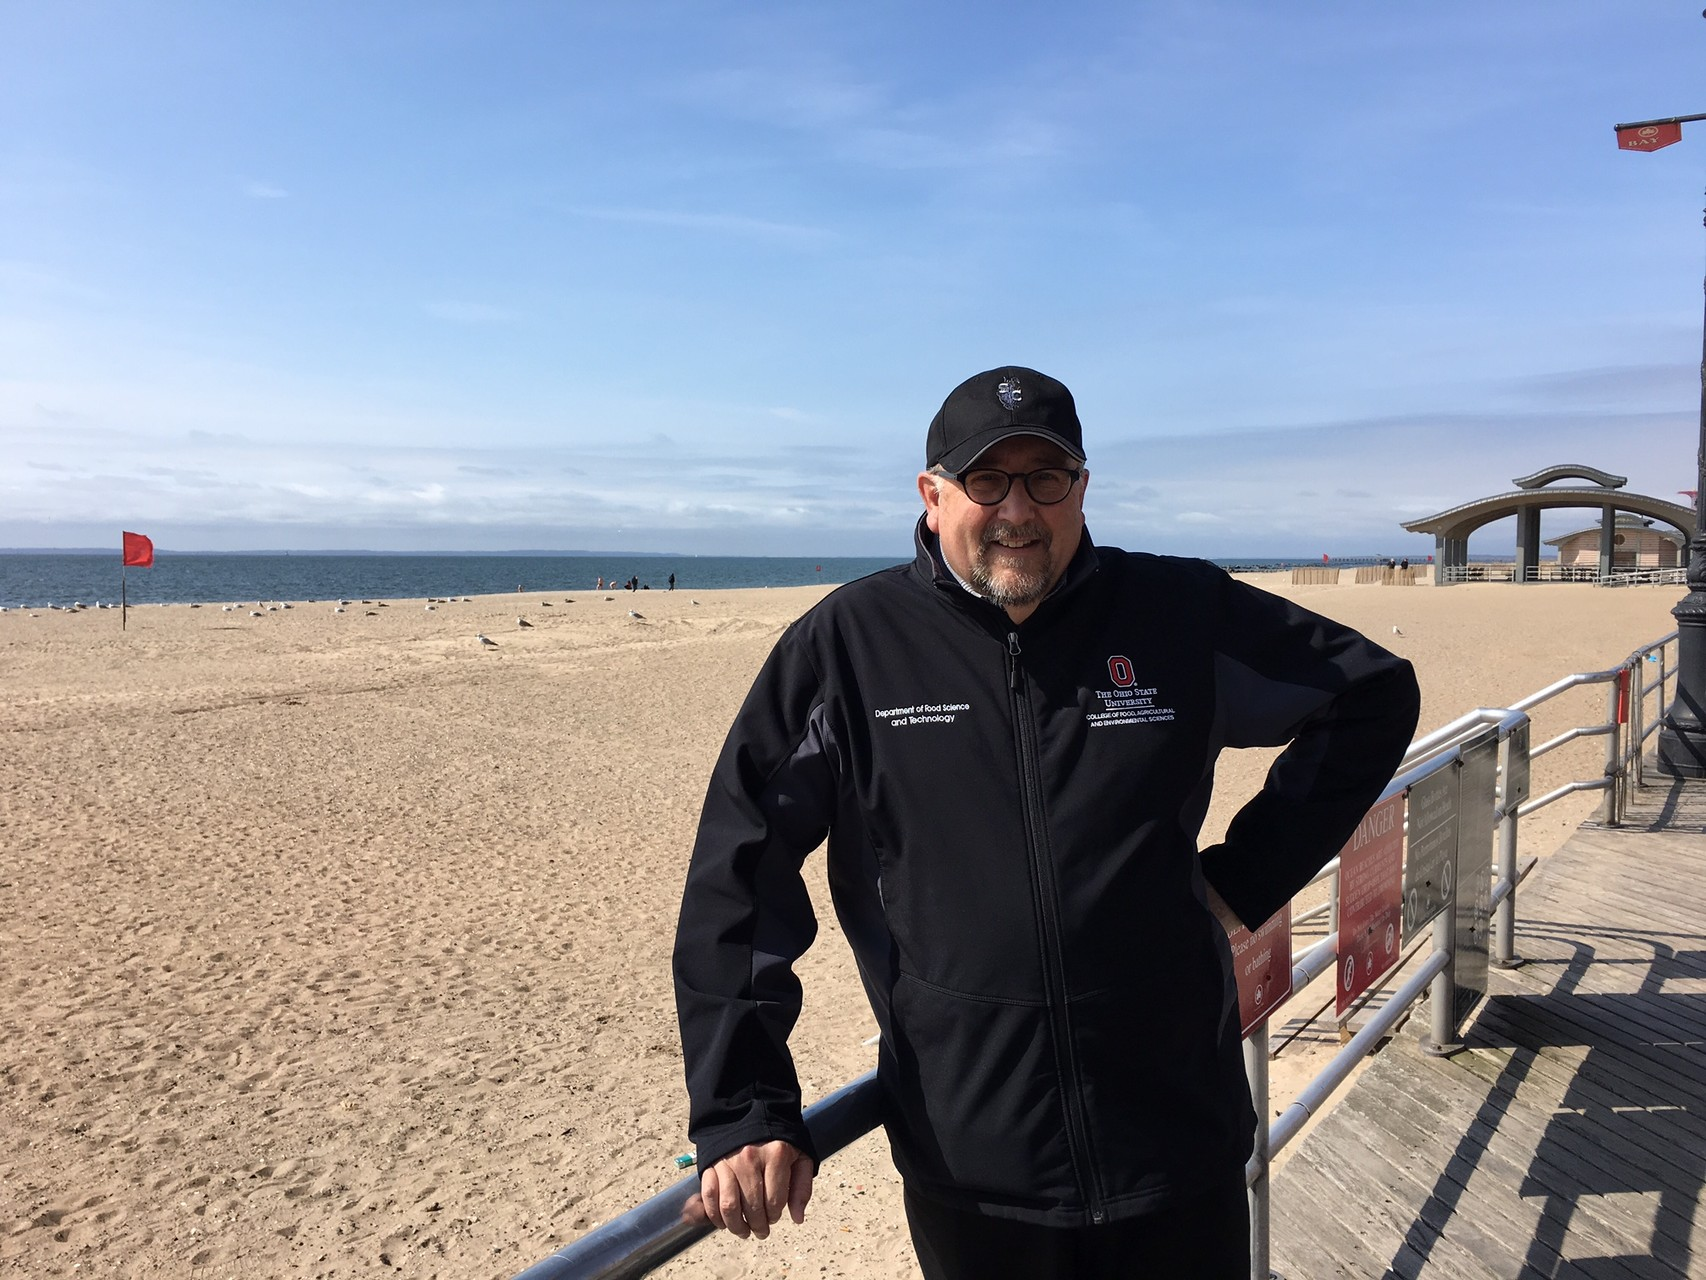 Dr. Steve Clinton in Brighton Beach, Brooklyn March 27, 2016